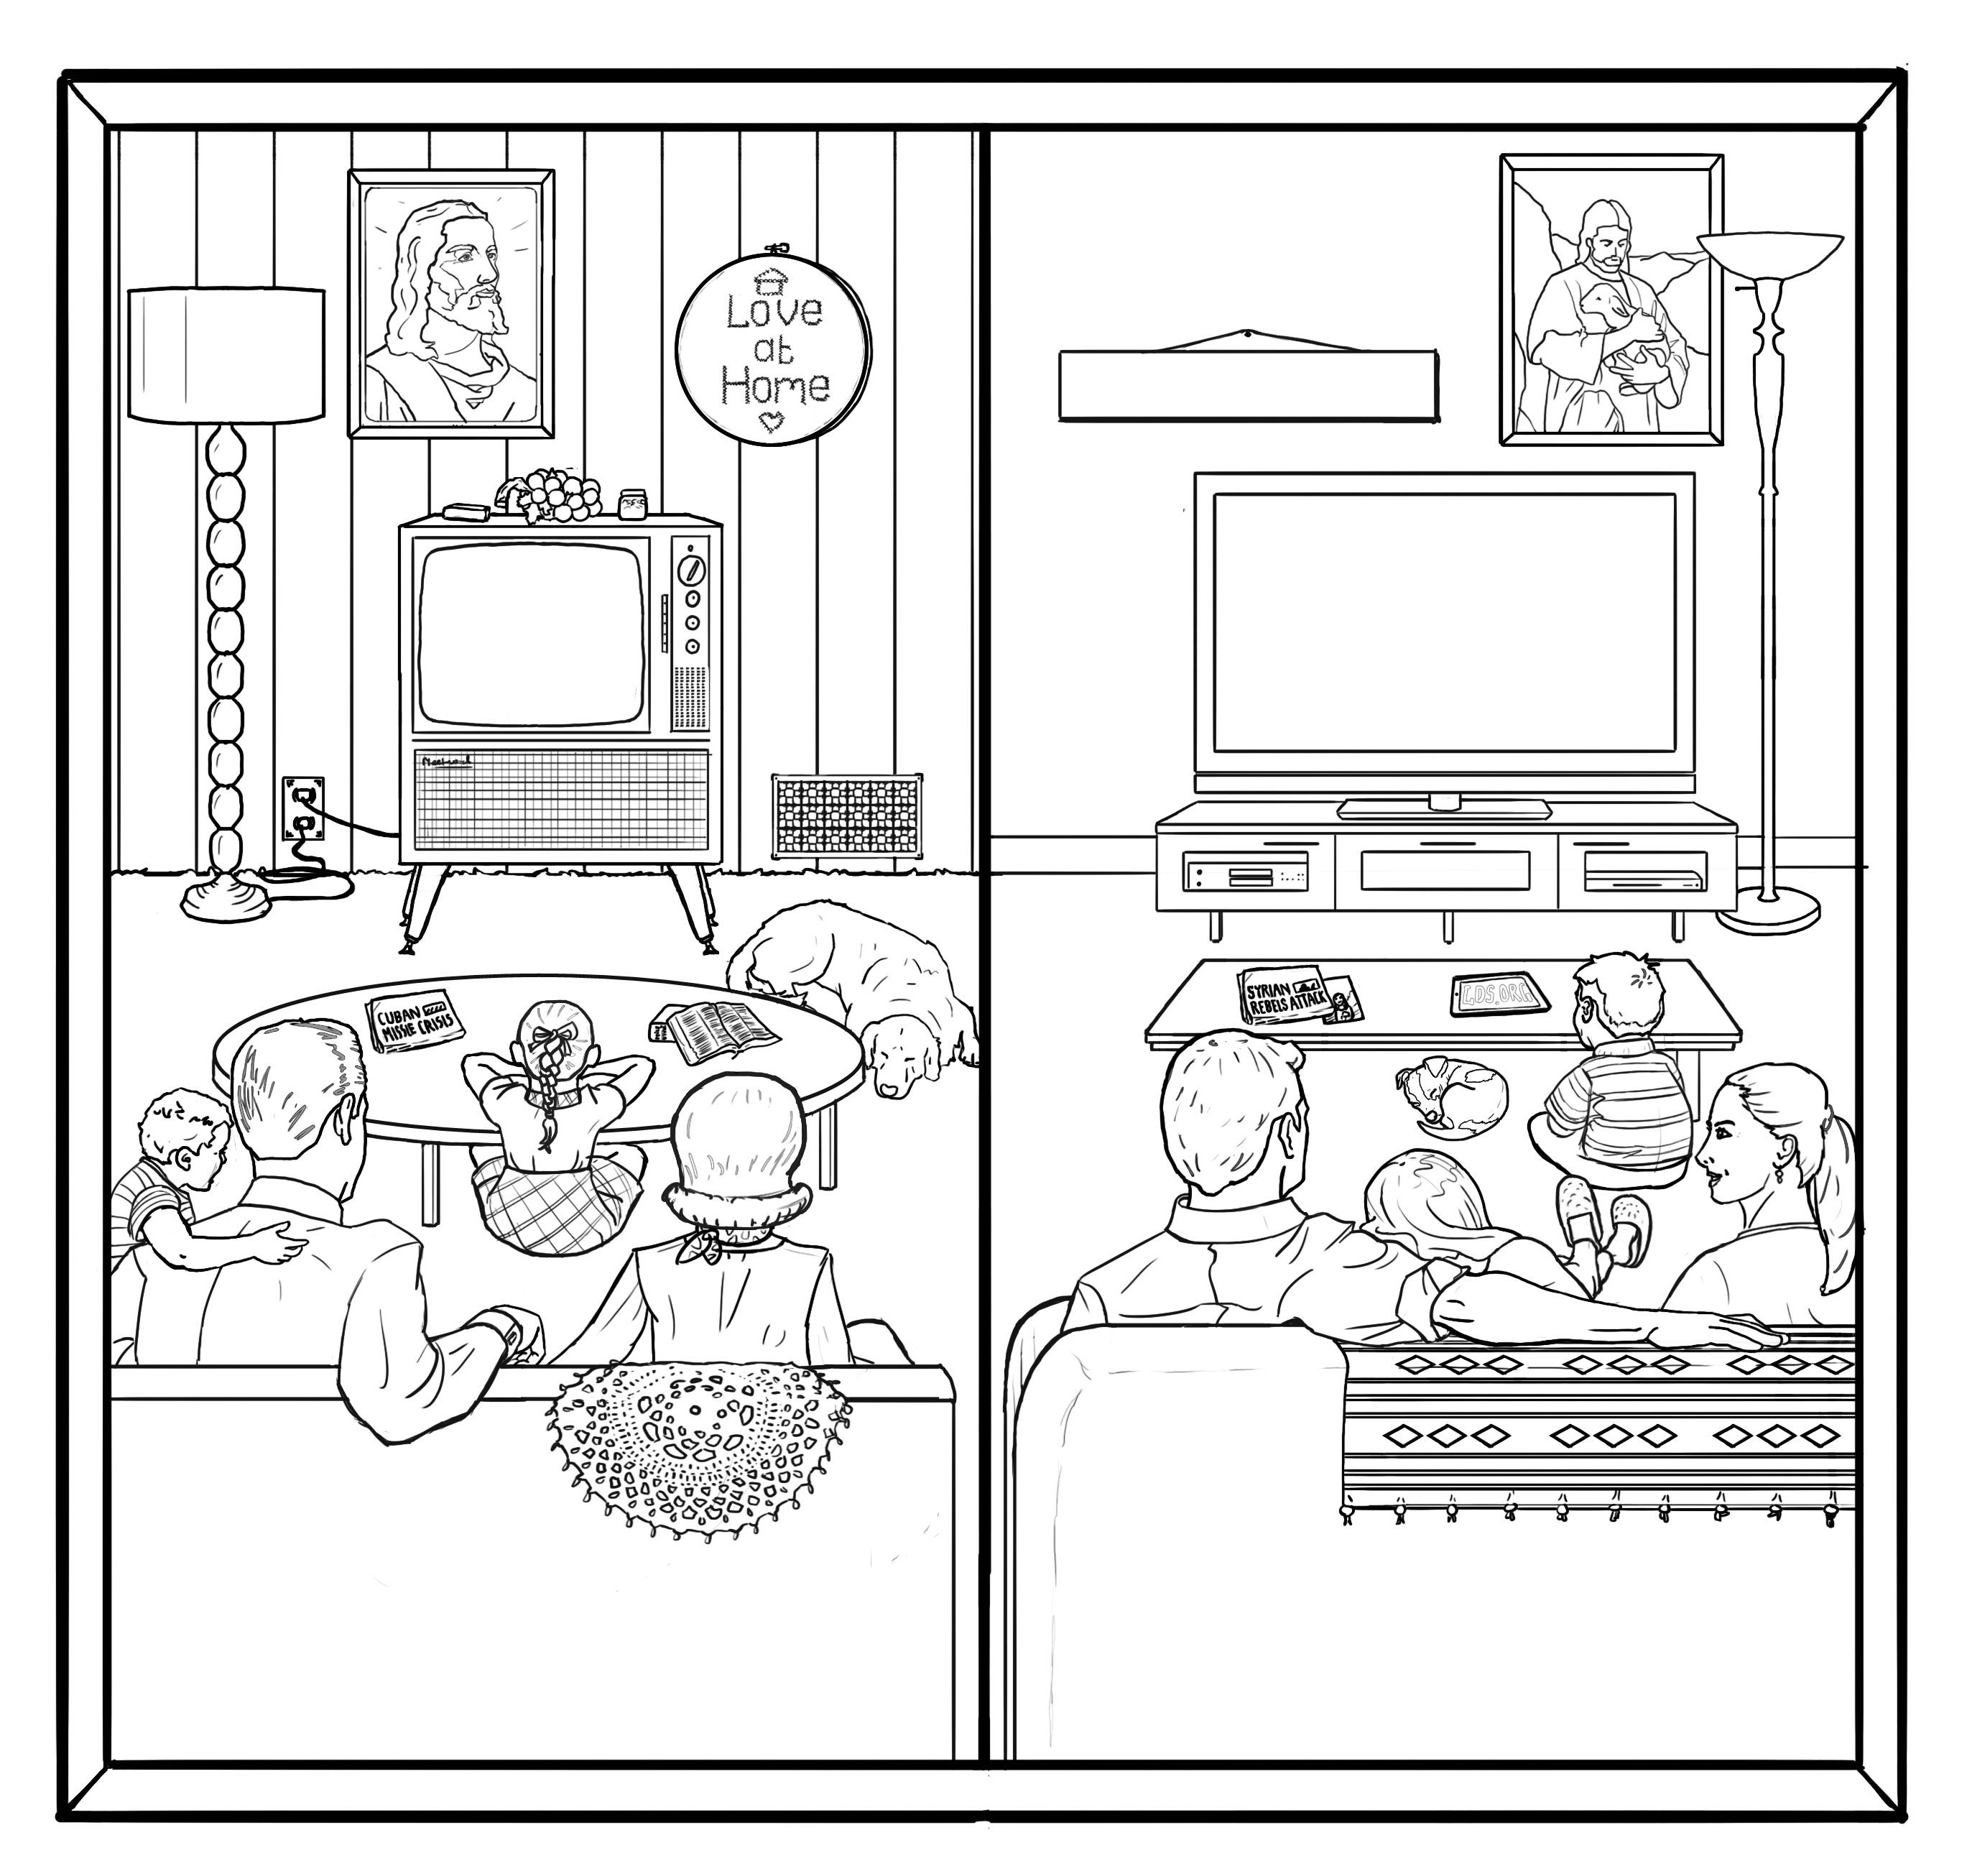 conference coloring pages - photo#18